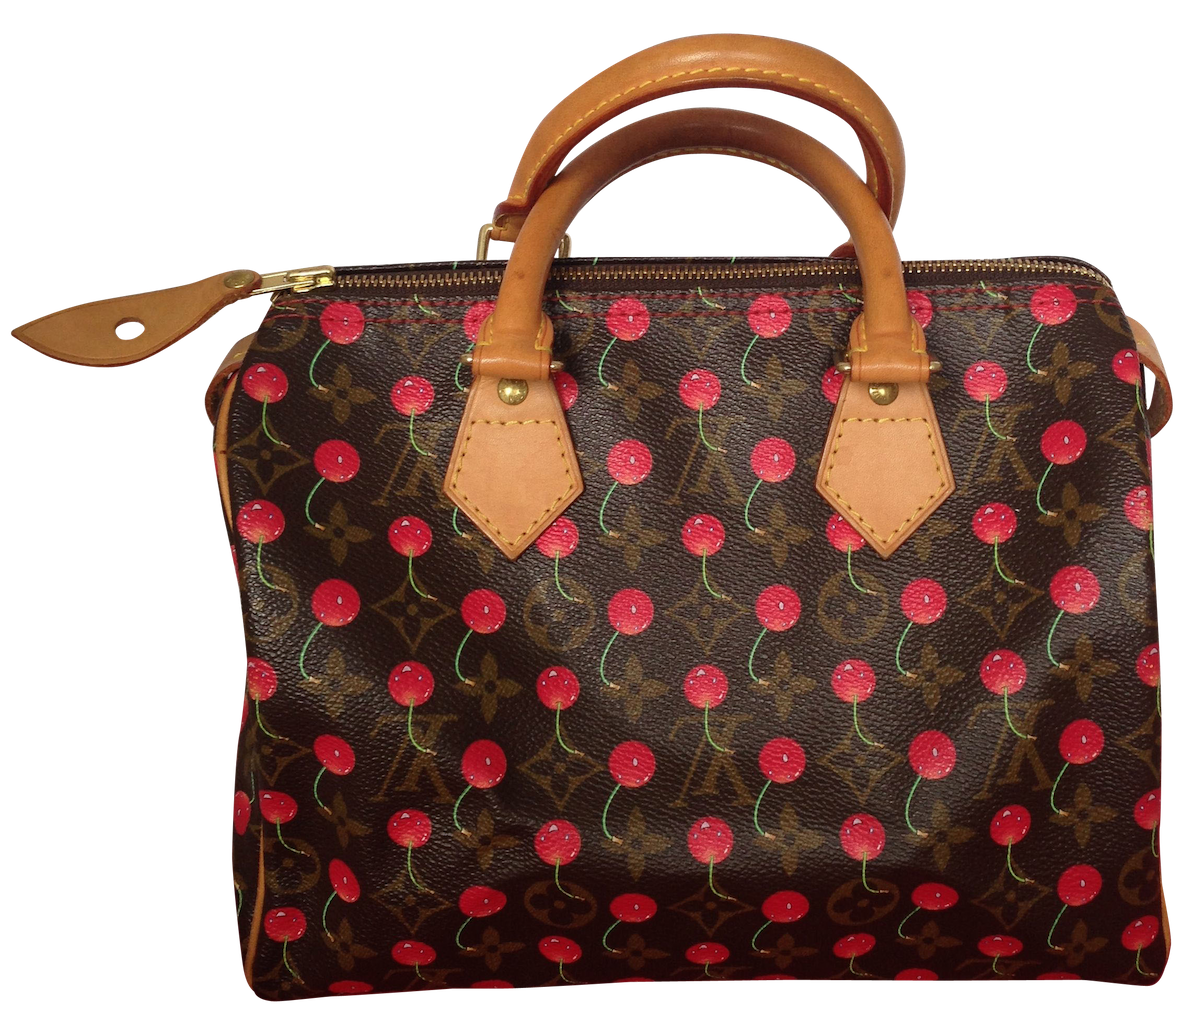 Sac Louis Vuitton Speedy 25 collection Cerises